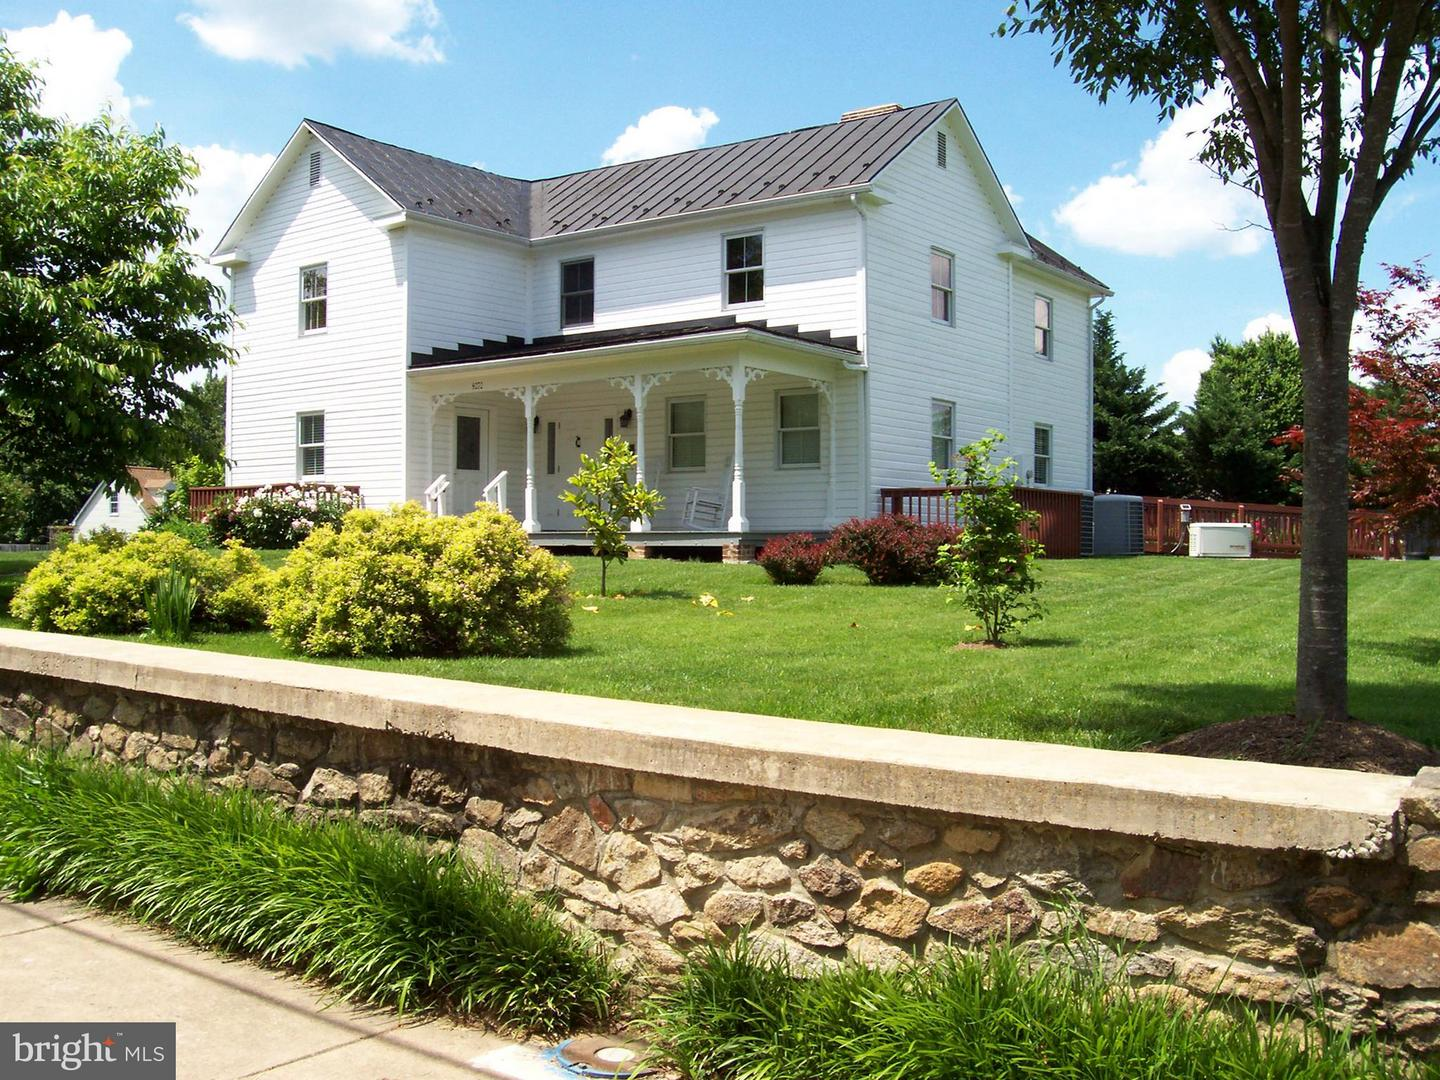 Other Residential for Rent at 8272 E. Main St E #2 C Marshall, Virginia 20115 United States